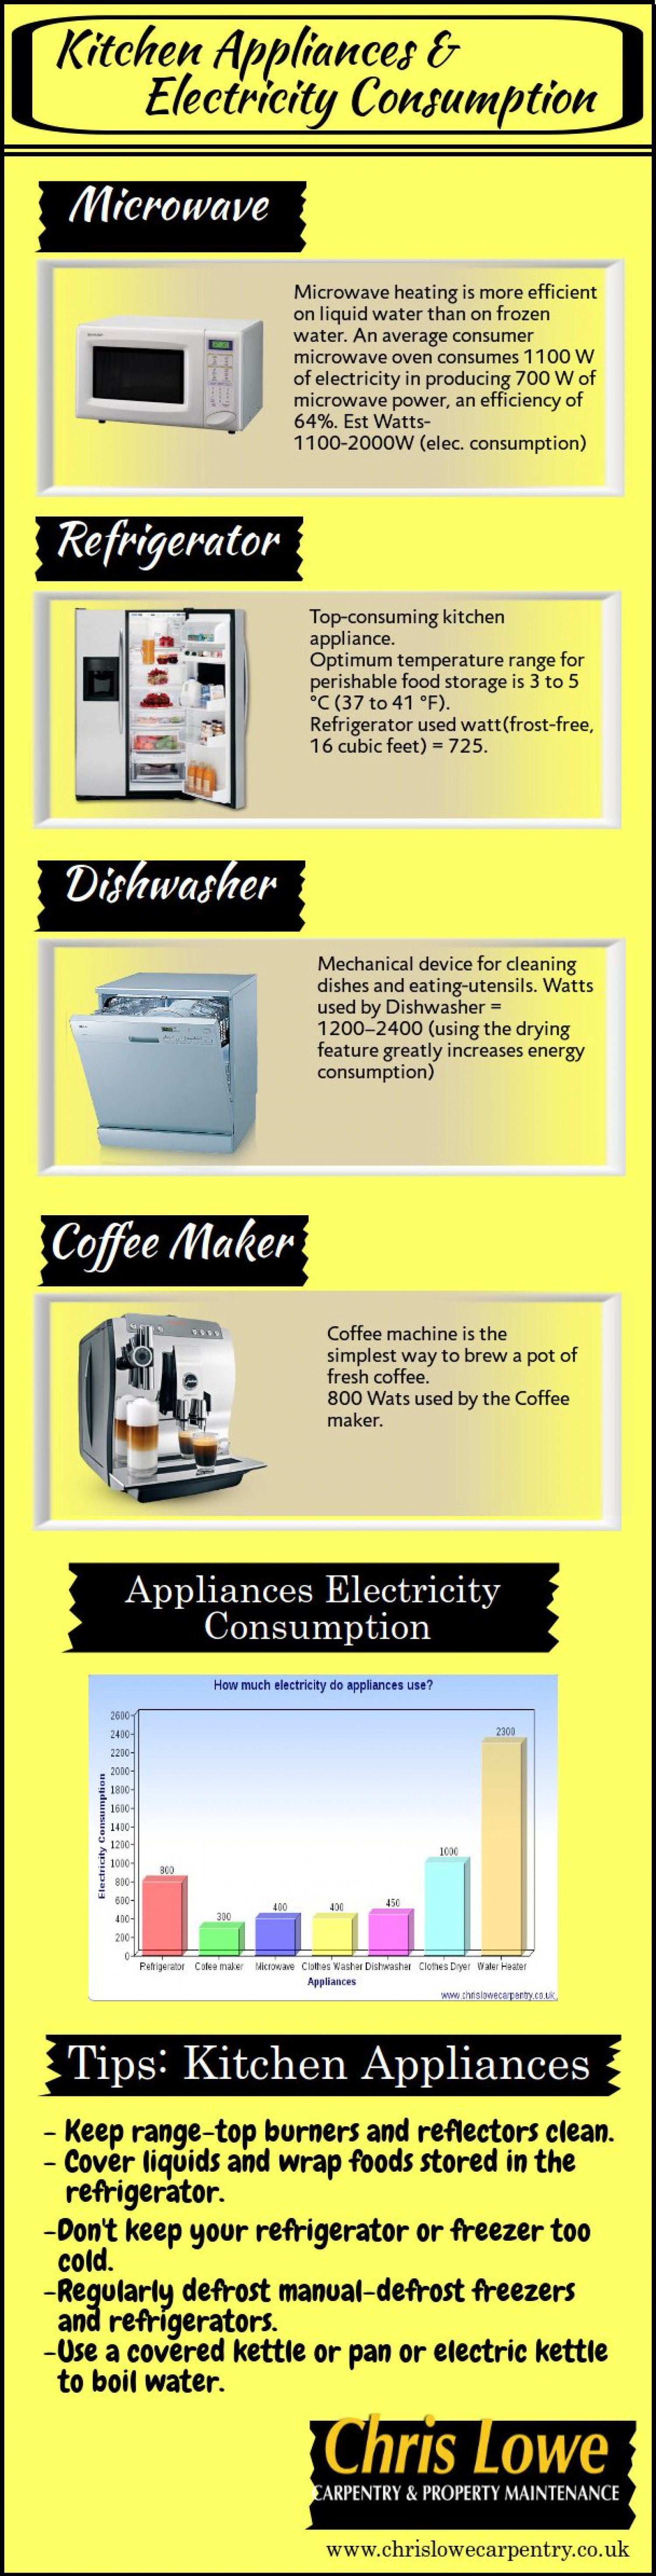 Kitchen Appliances & Electricity Consumption Infographic